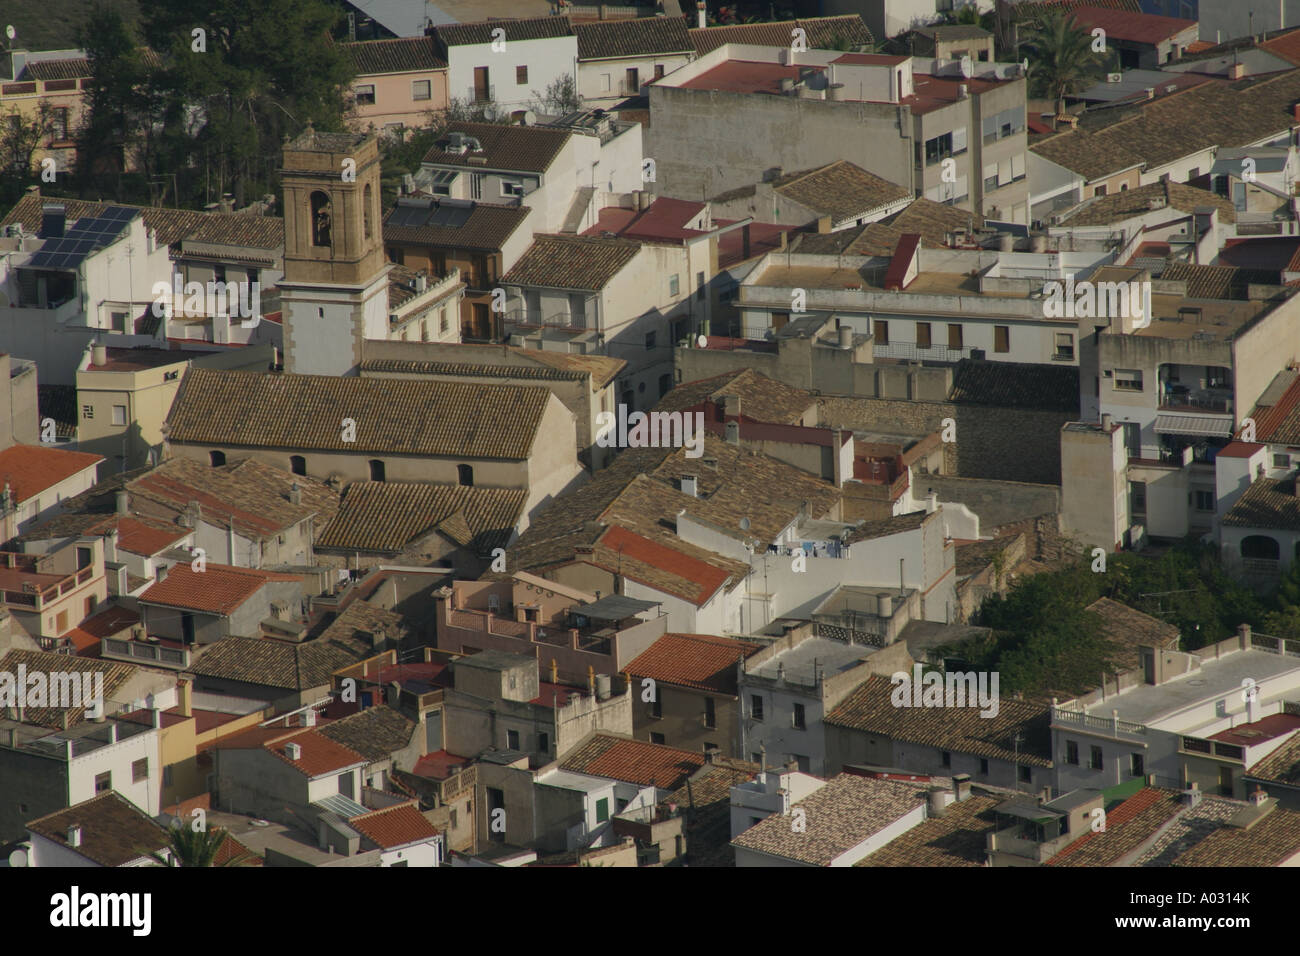 Orba Town, inland from the Costa Blanca, Spain - Stock Image